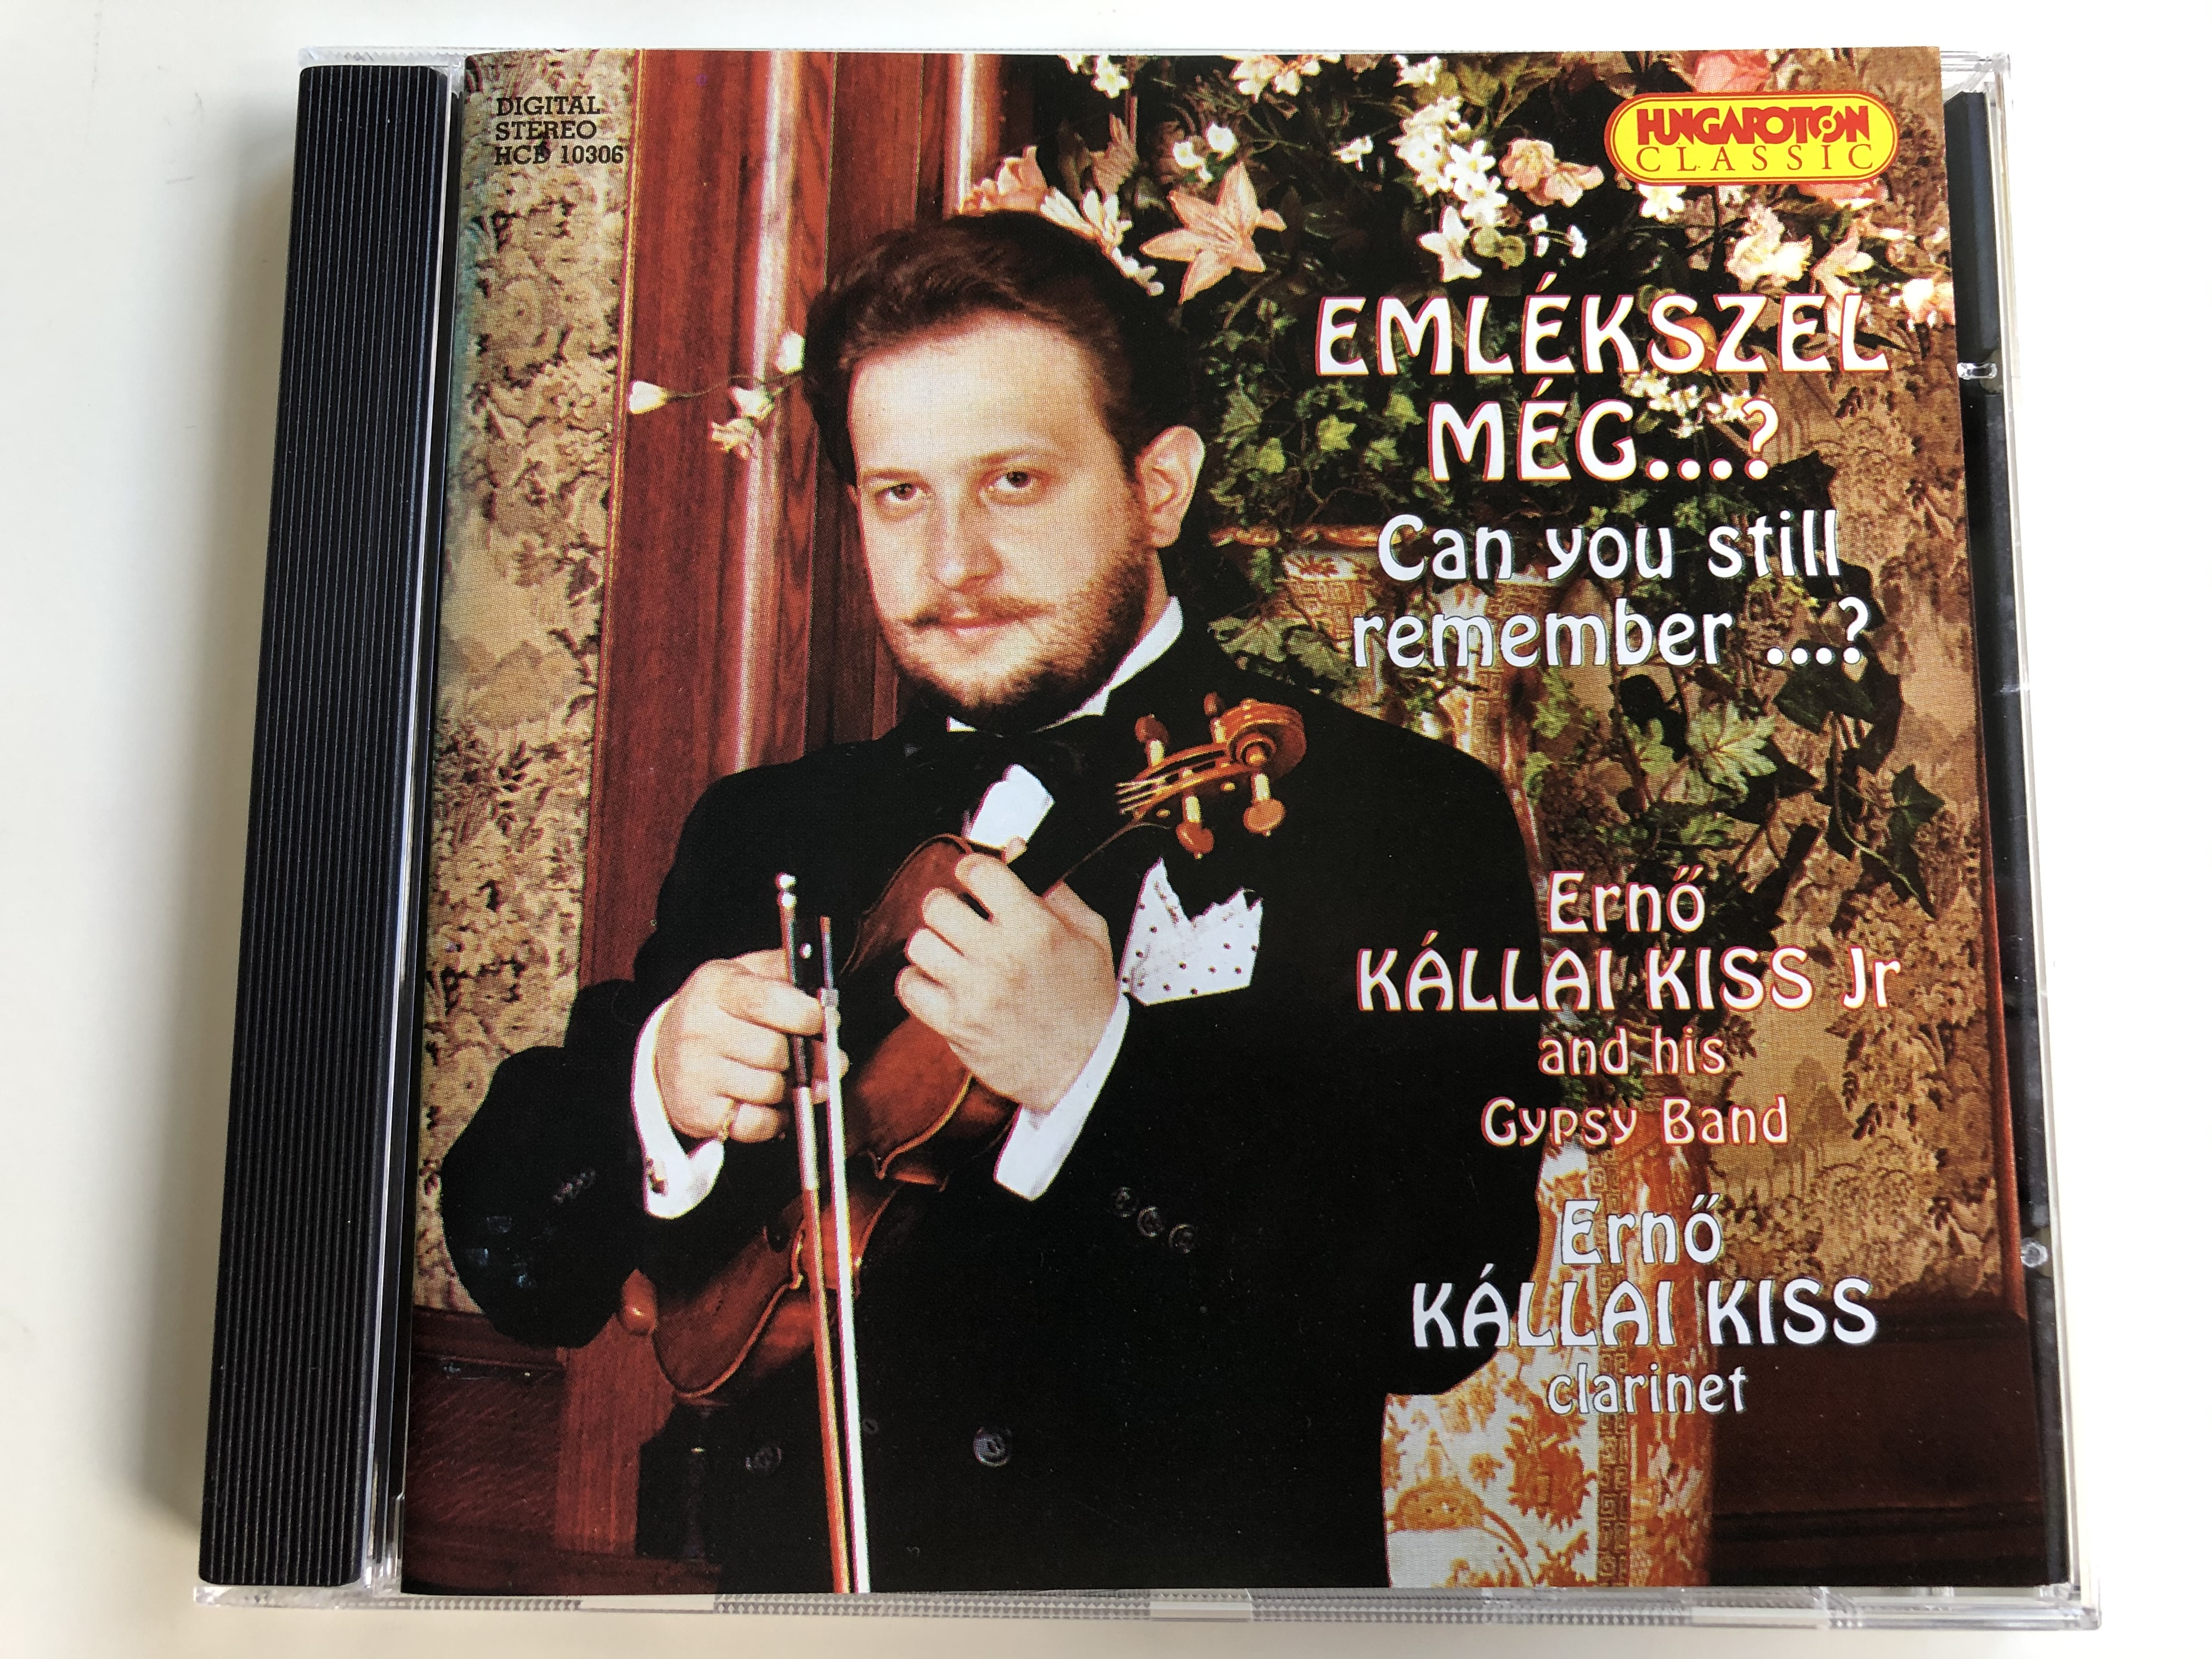 emlekszel-meg...-can-you-still-remember...-erno-kallai-kiss-jr-and-his-gypsy-band-erno-kallai-kiss-clarinet-hungaroton-classic-audio-cd-1997-stereo-hcd-10306-1-.jpg